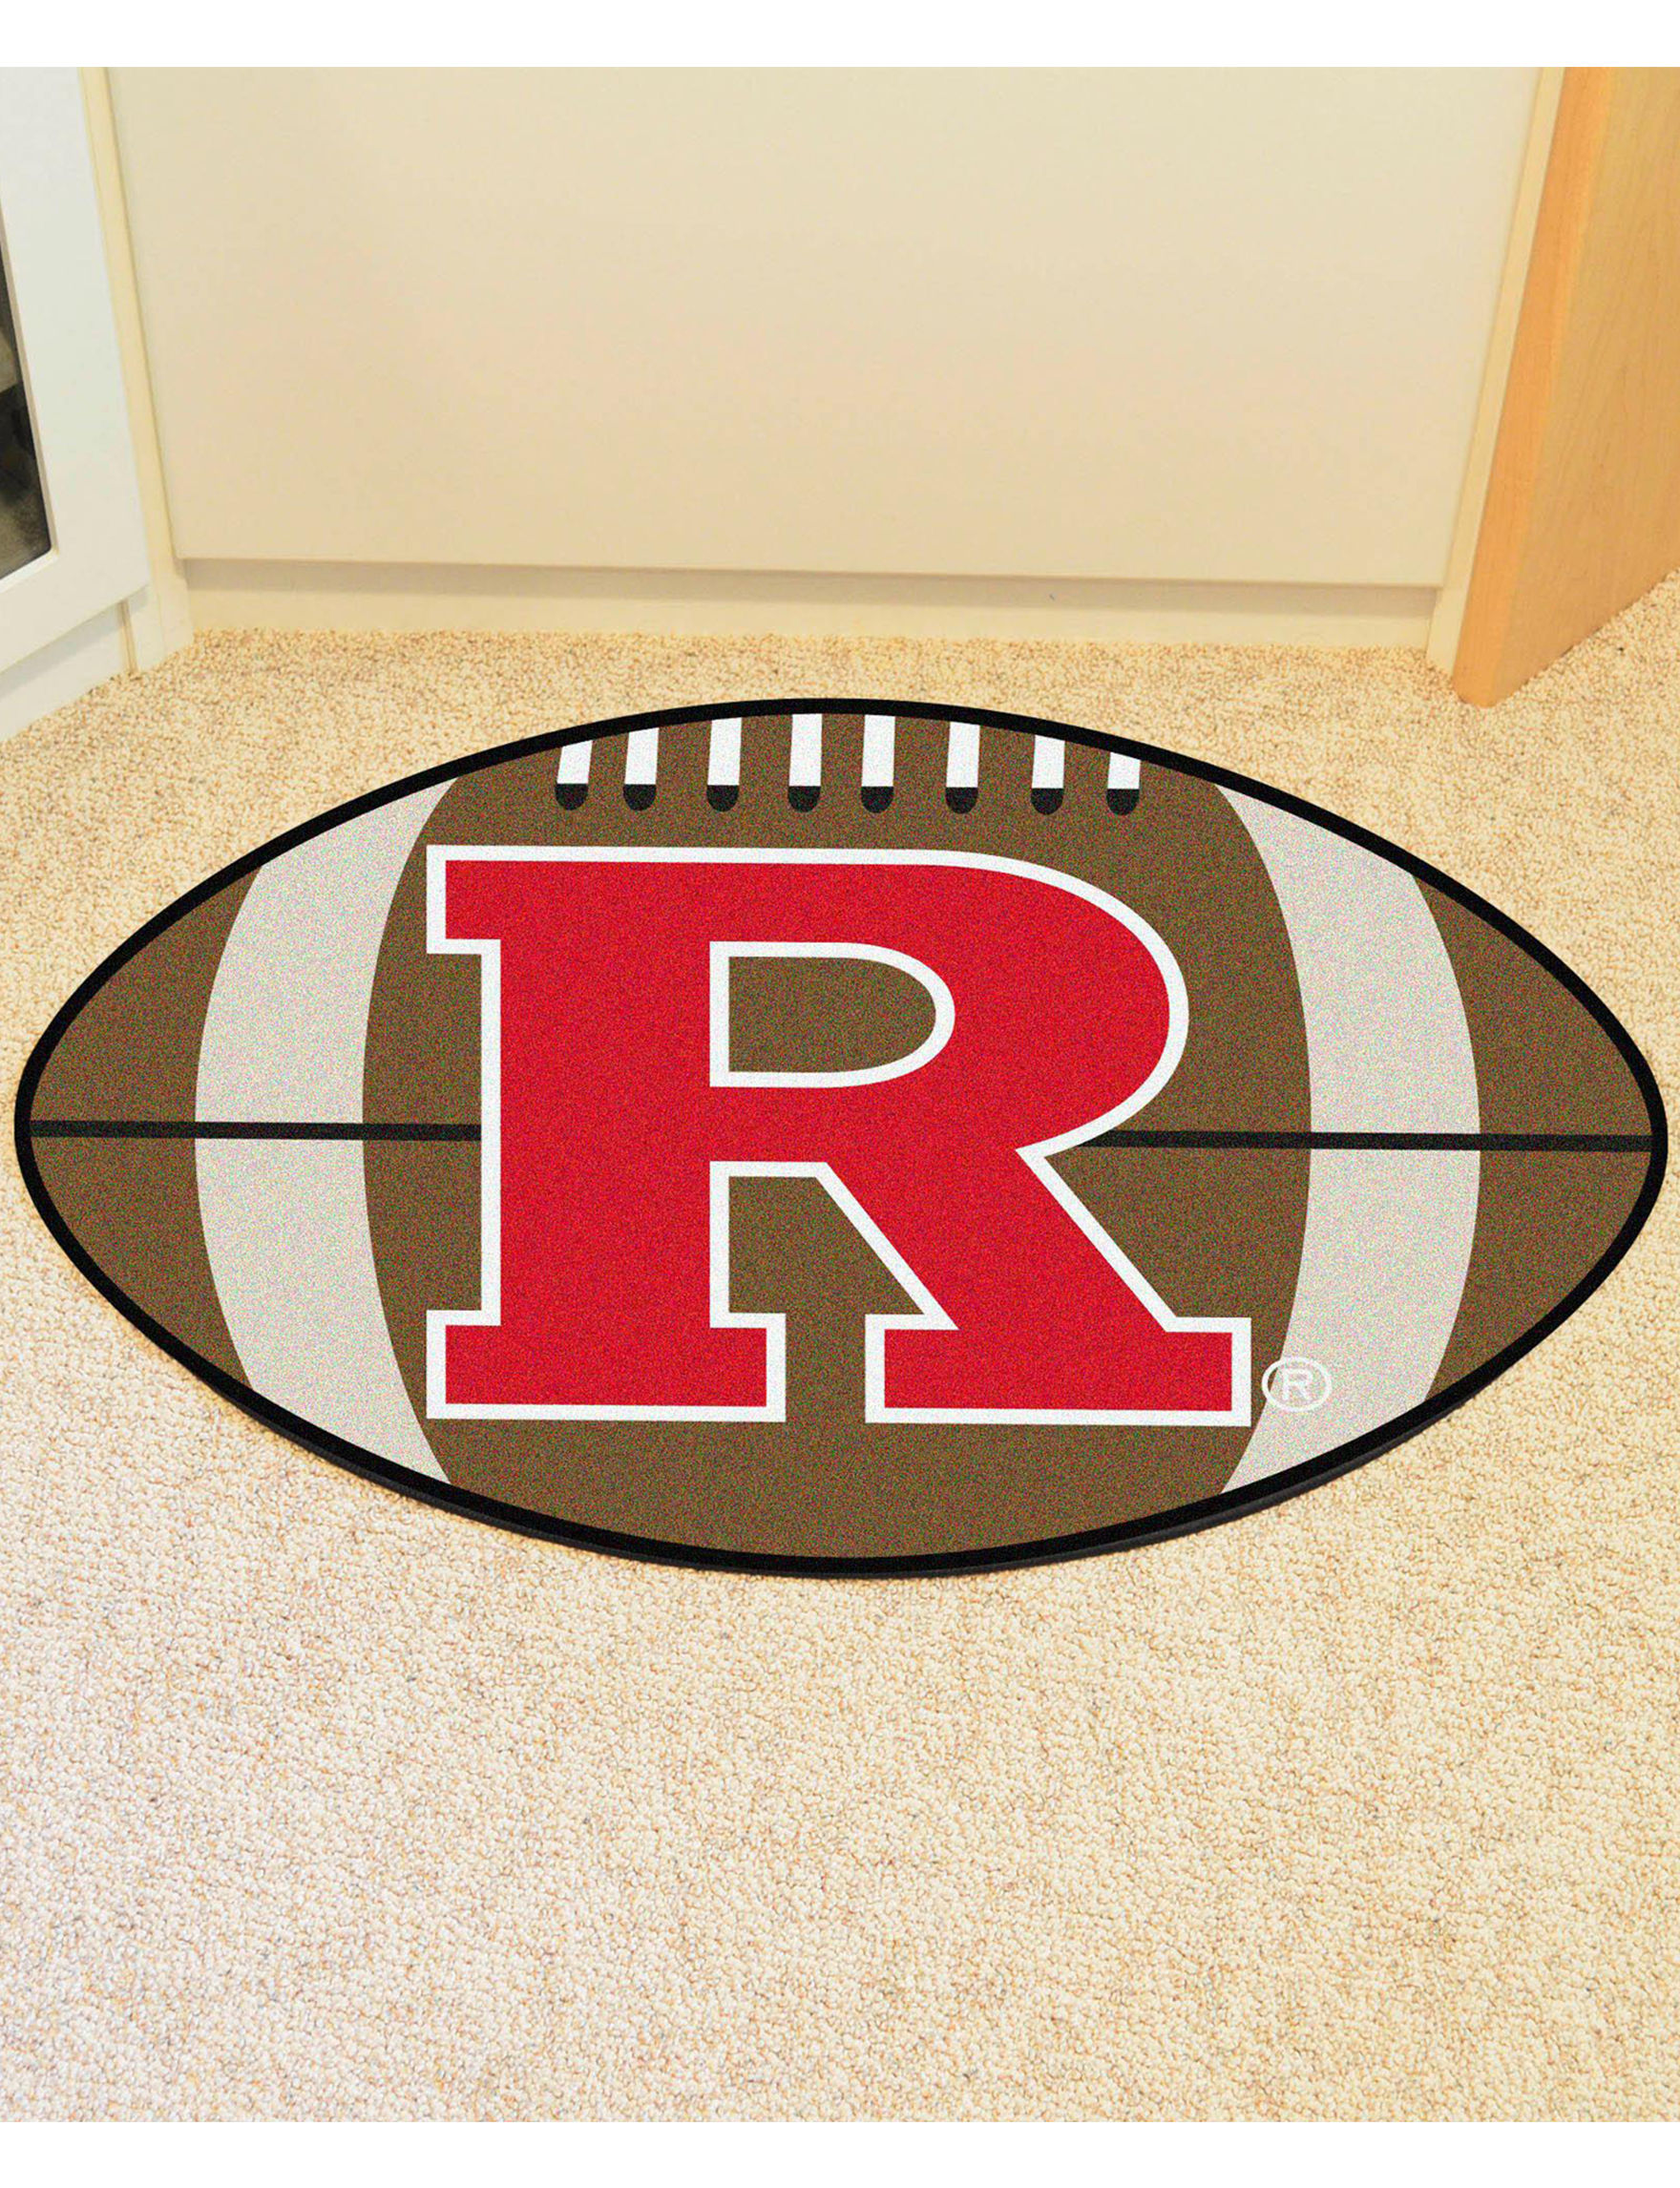 Fanmats Red / White Rugs